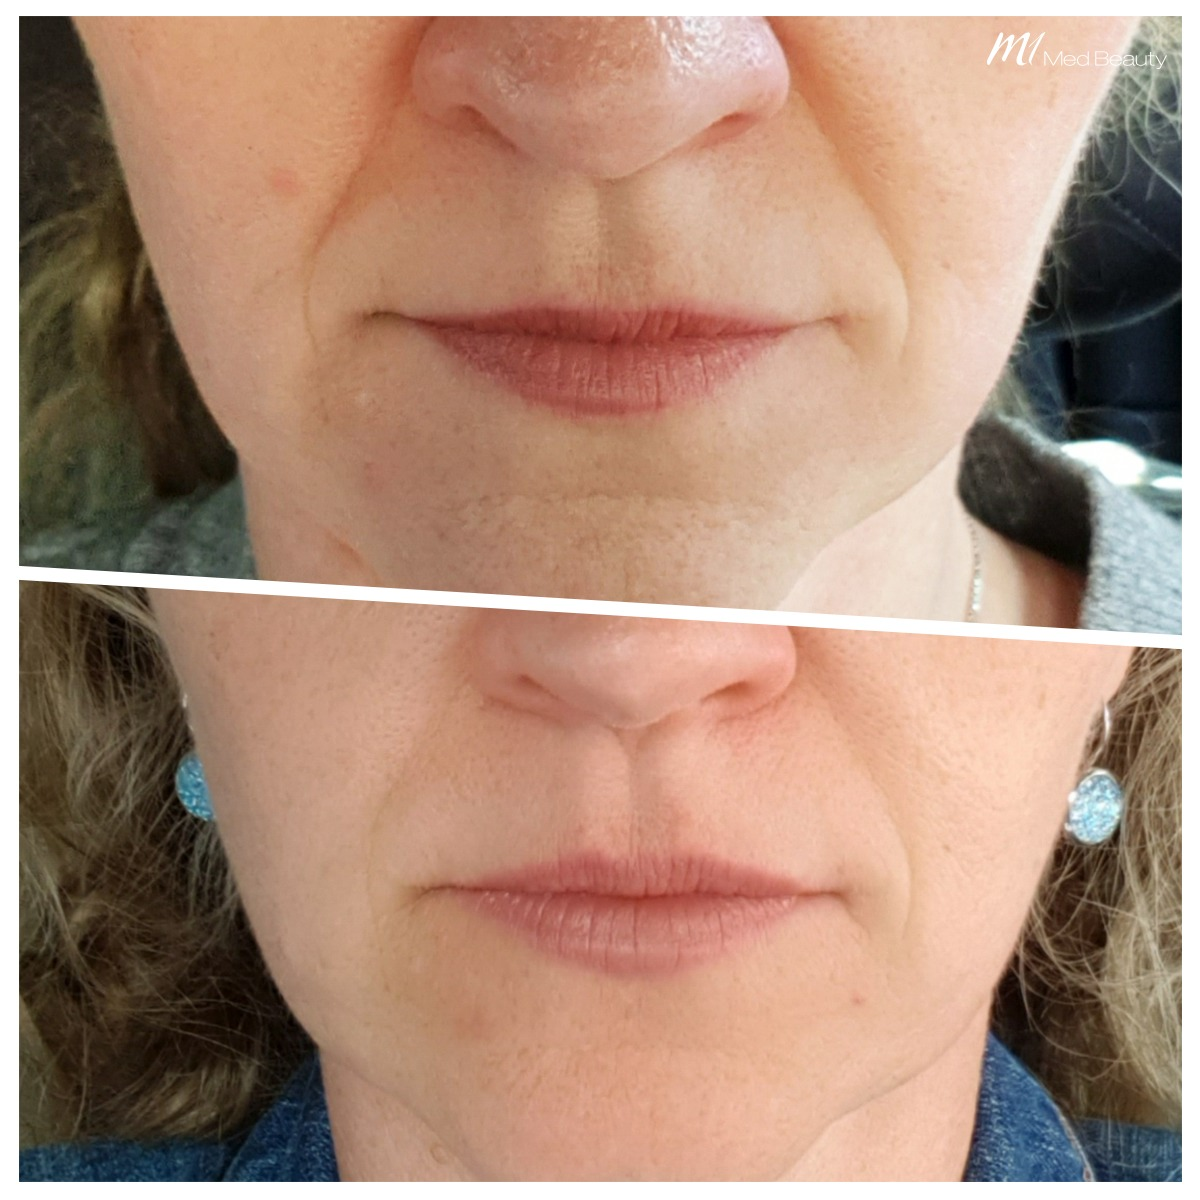 Nasolabial folds treatment with dermal filler at M1 Med Beauty before and after_02